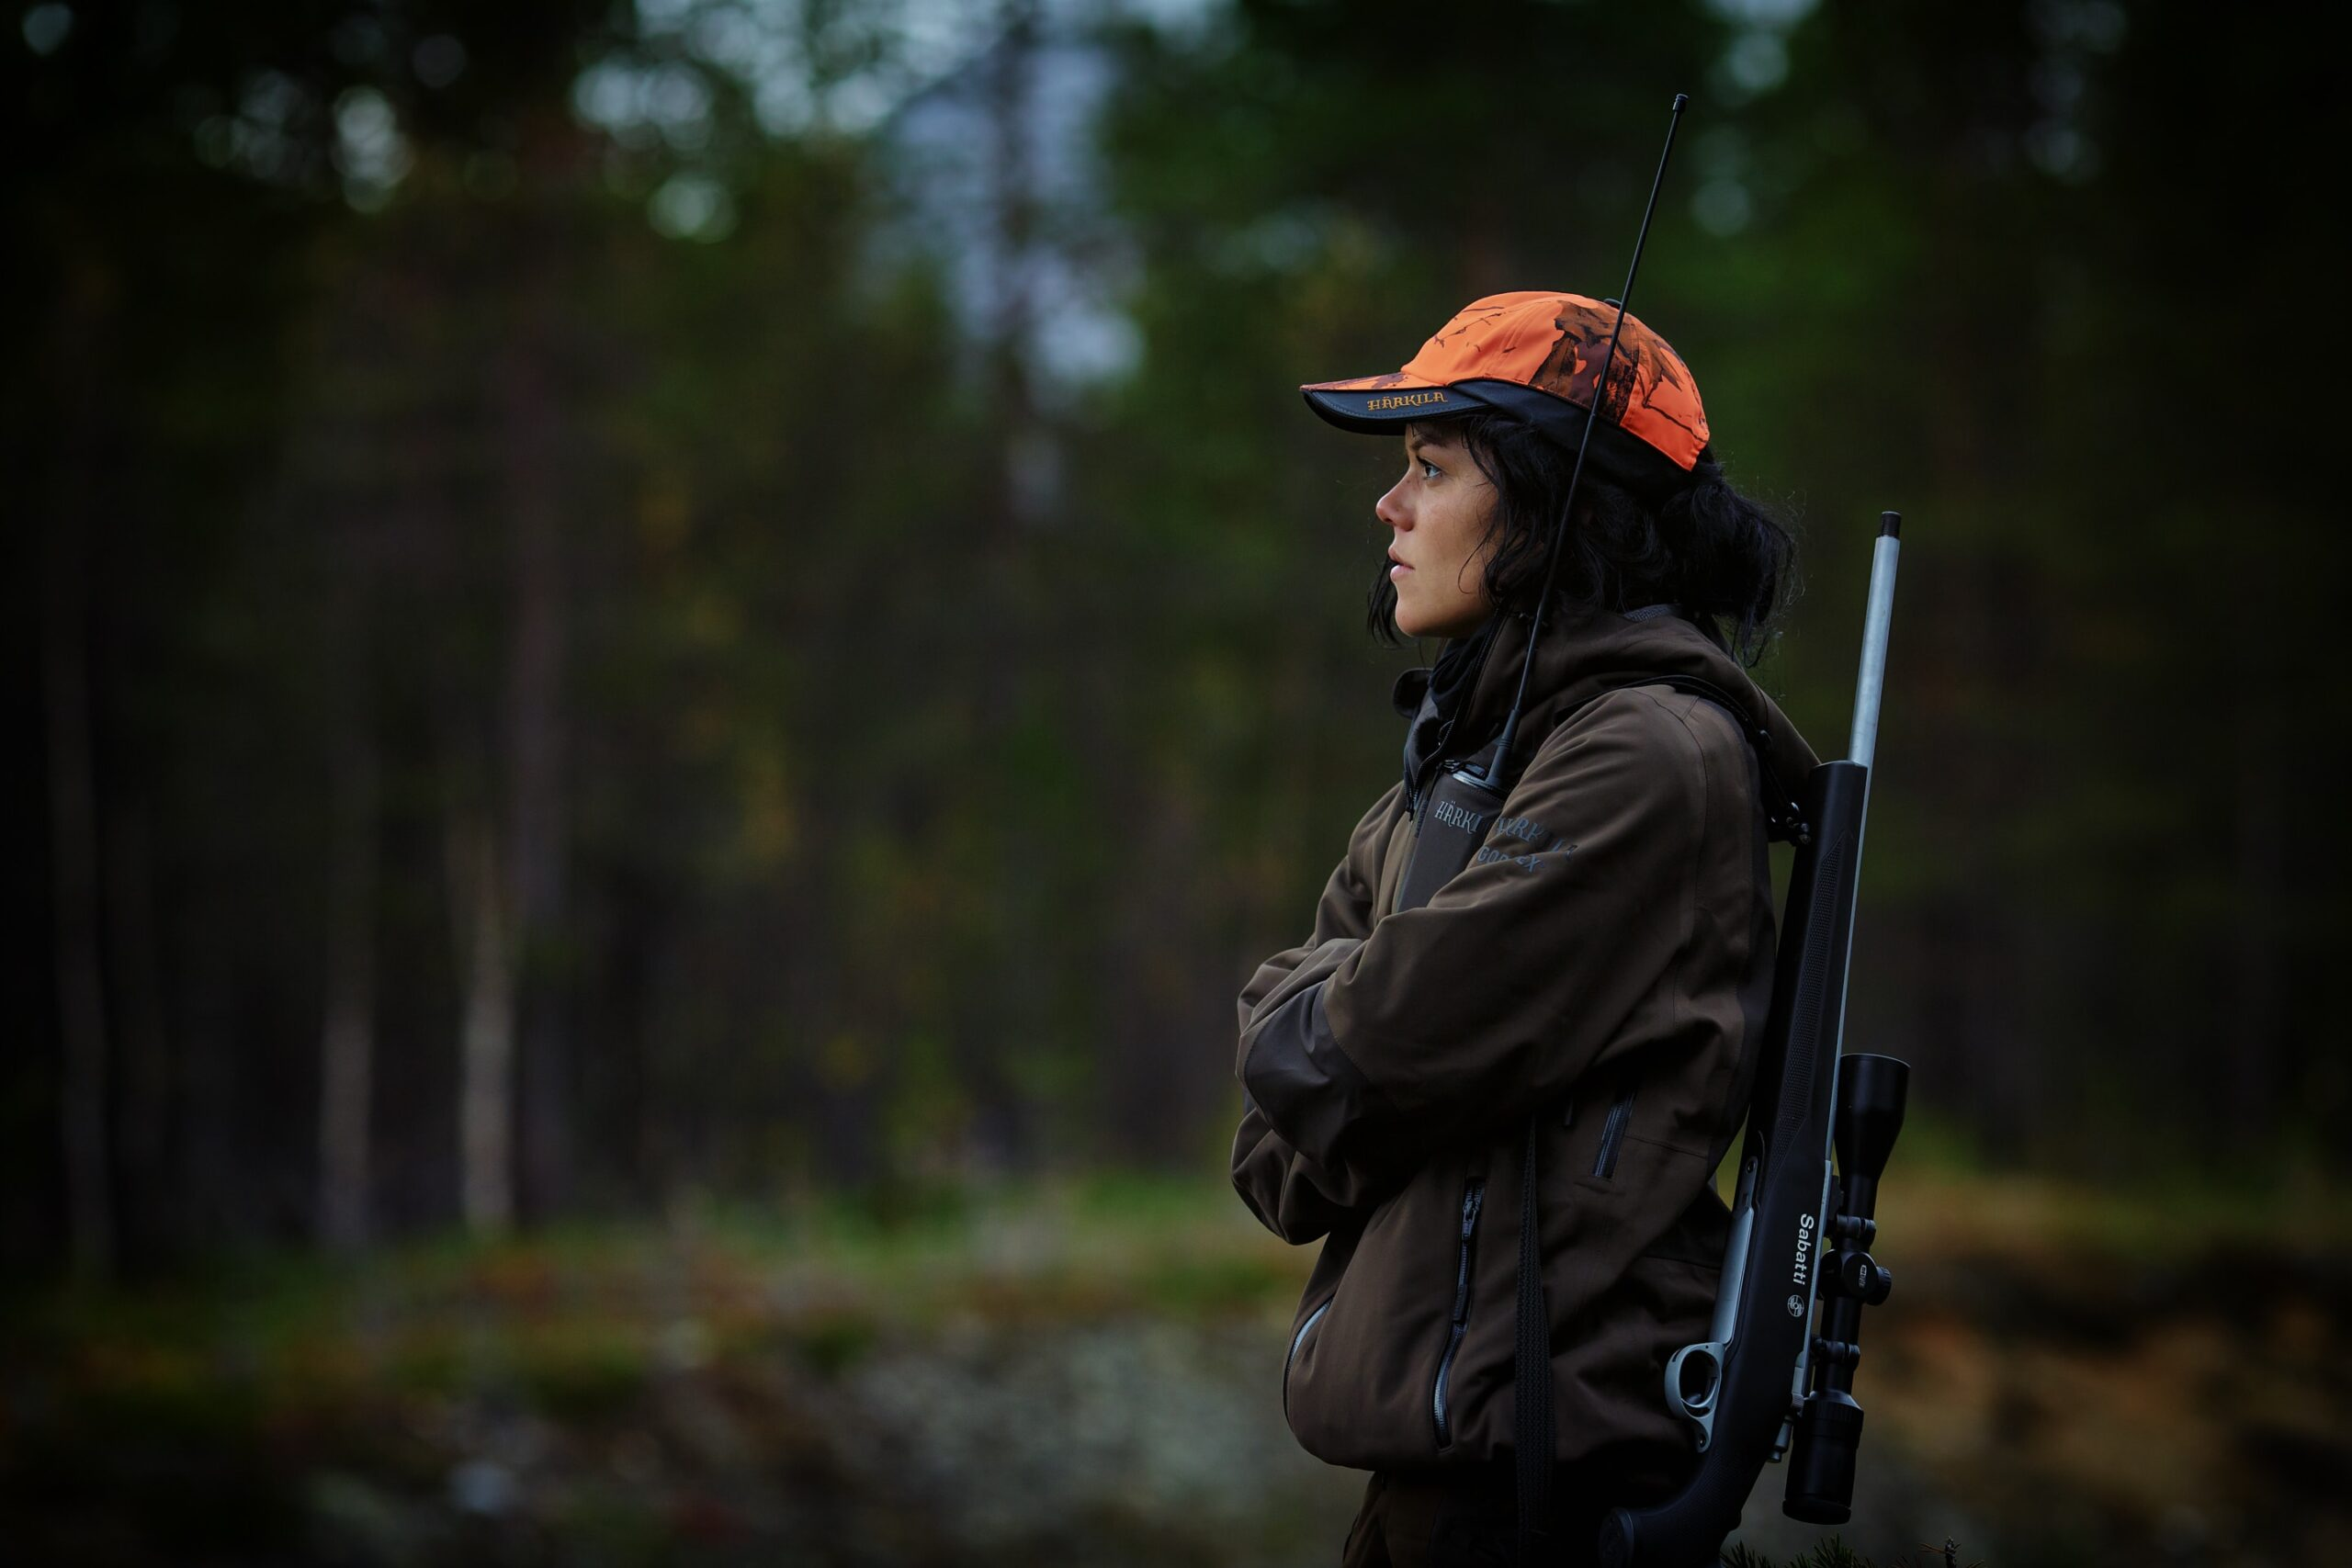 shotgun and firearms applications and renewals medical reports - Shotgun Medicals. Woman in forest hunting